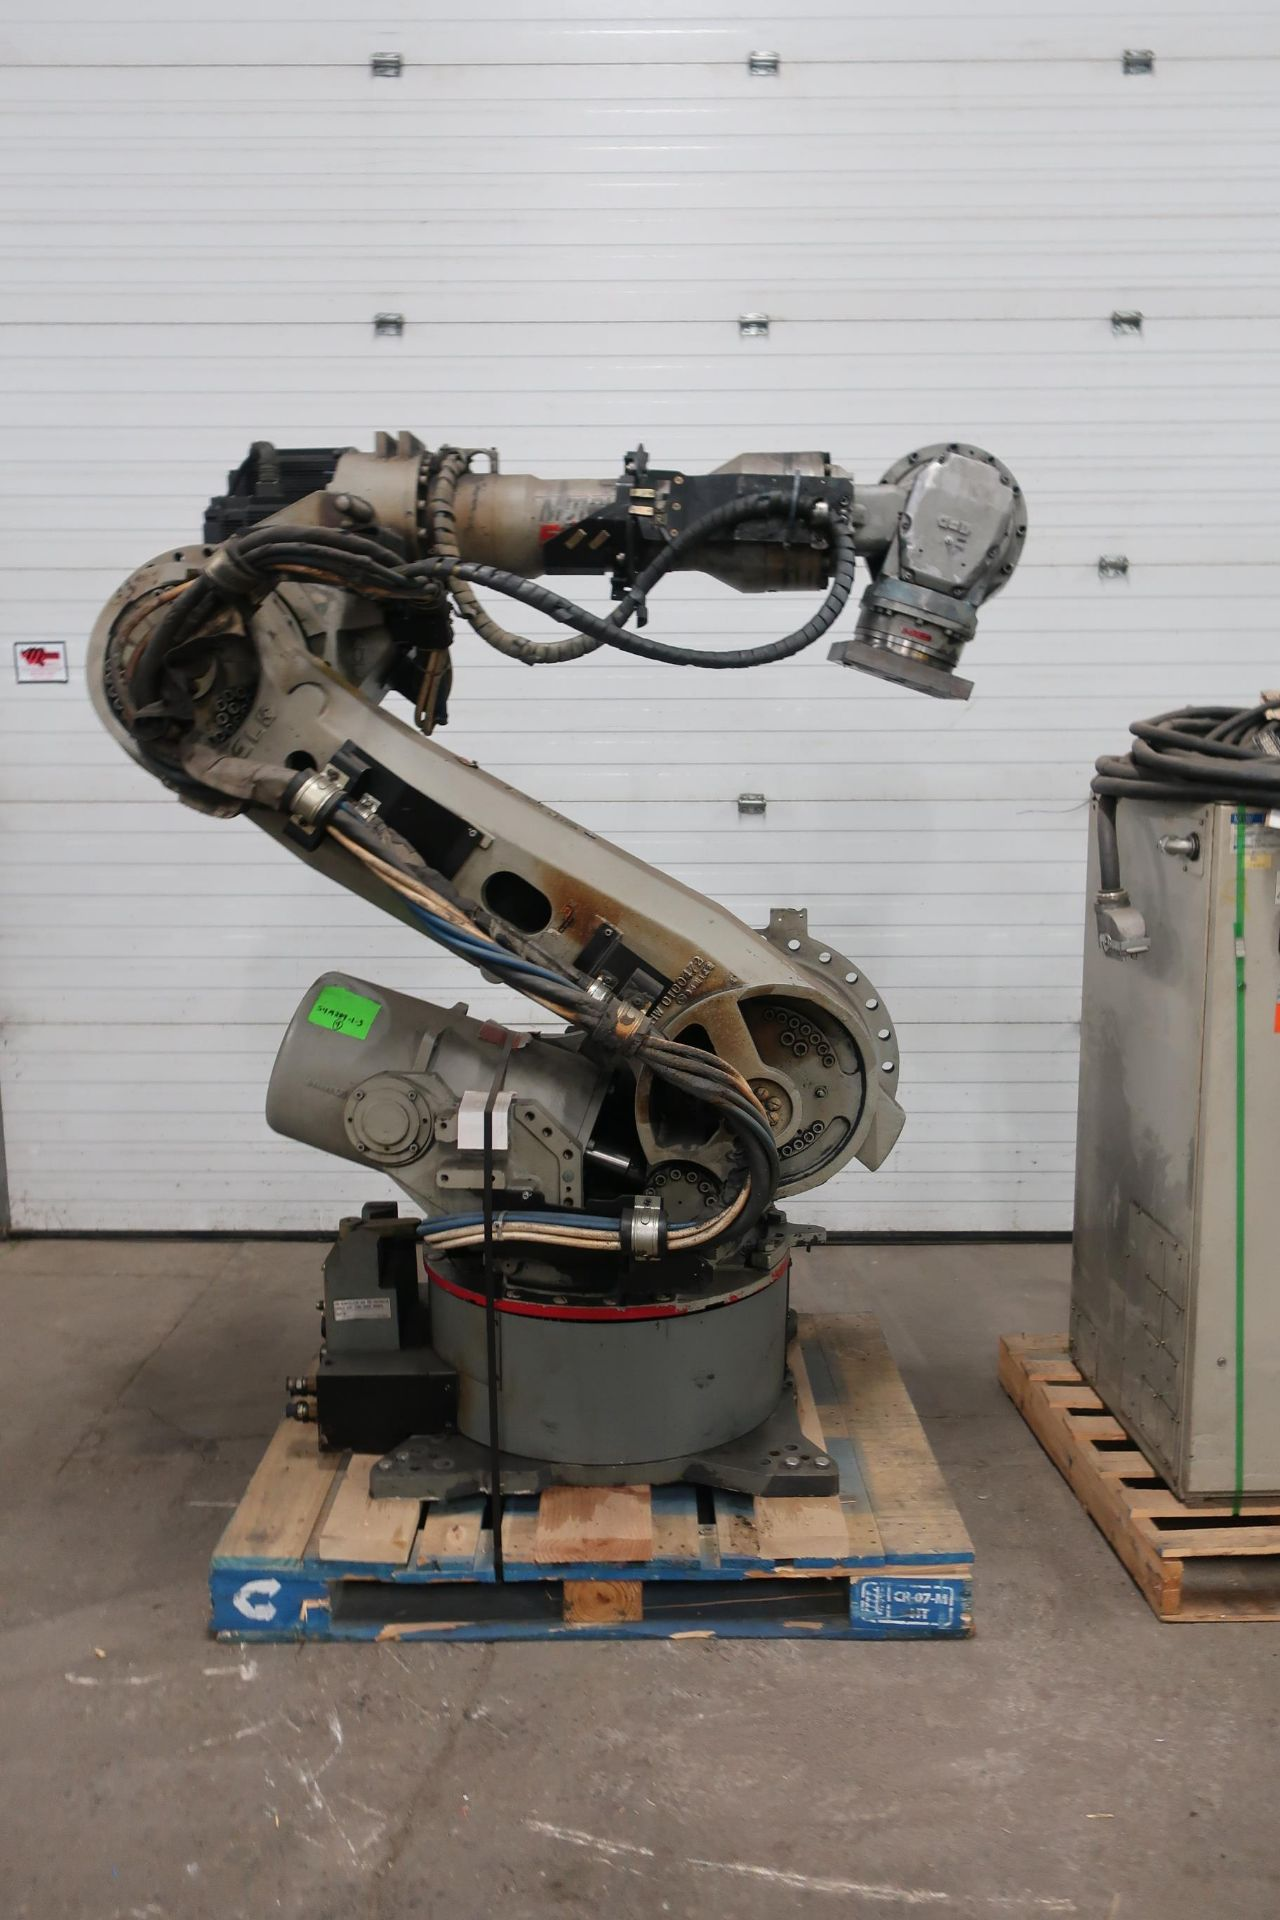 2008 Motoman ES200N Robot 200kg Capacity with Controller COMPLETE with Teach Pendant, Cables, LOW - Image 3 of 3